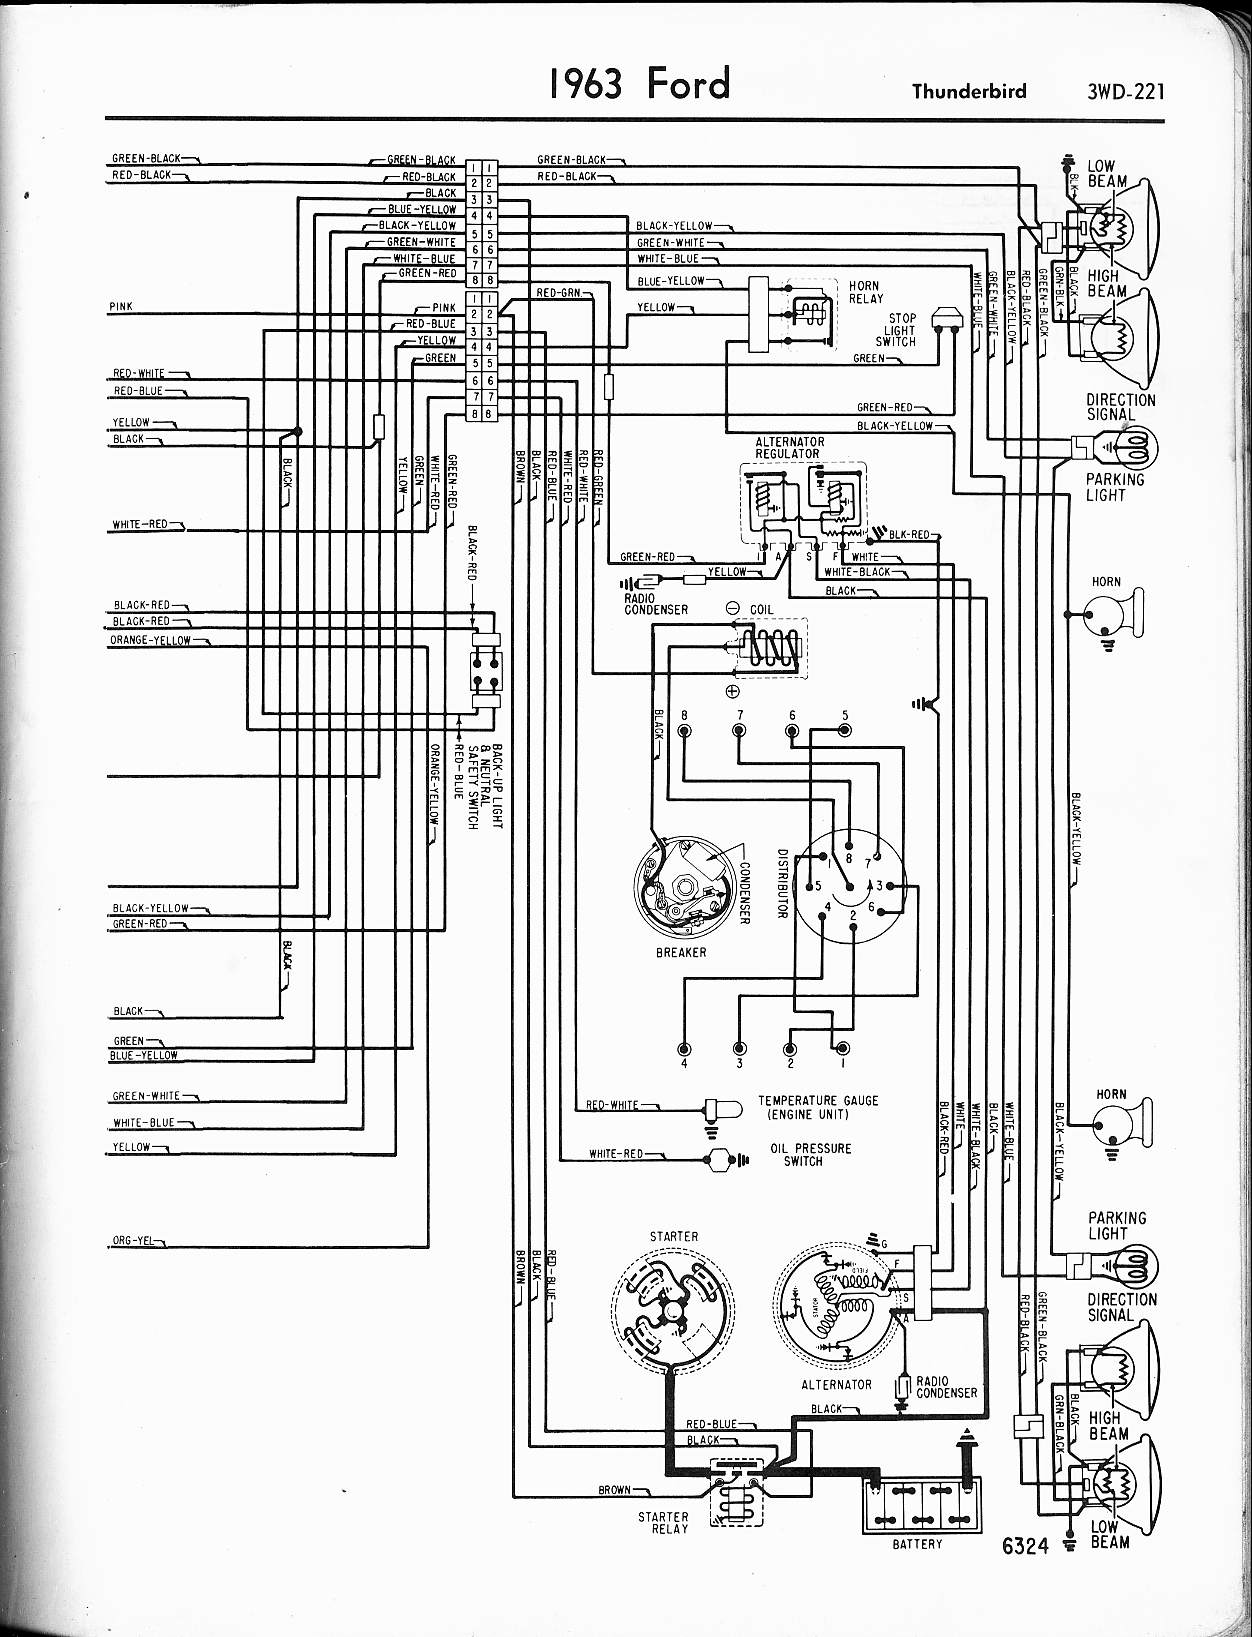 MWire5765 221 57 65 ford wiring diagrams 1970 ford truck wiring diagram at crackthecode.co